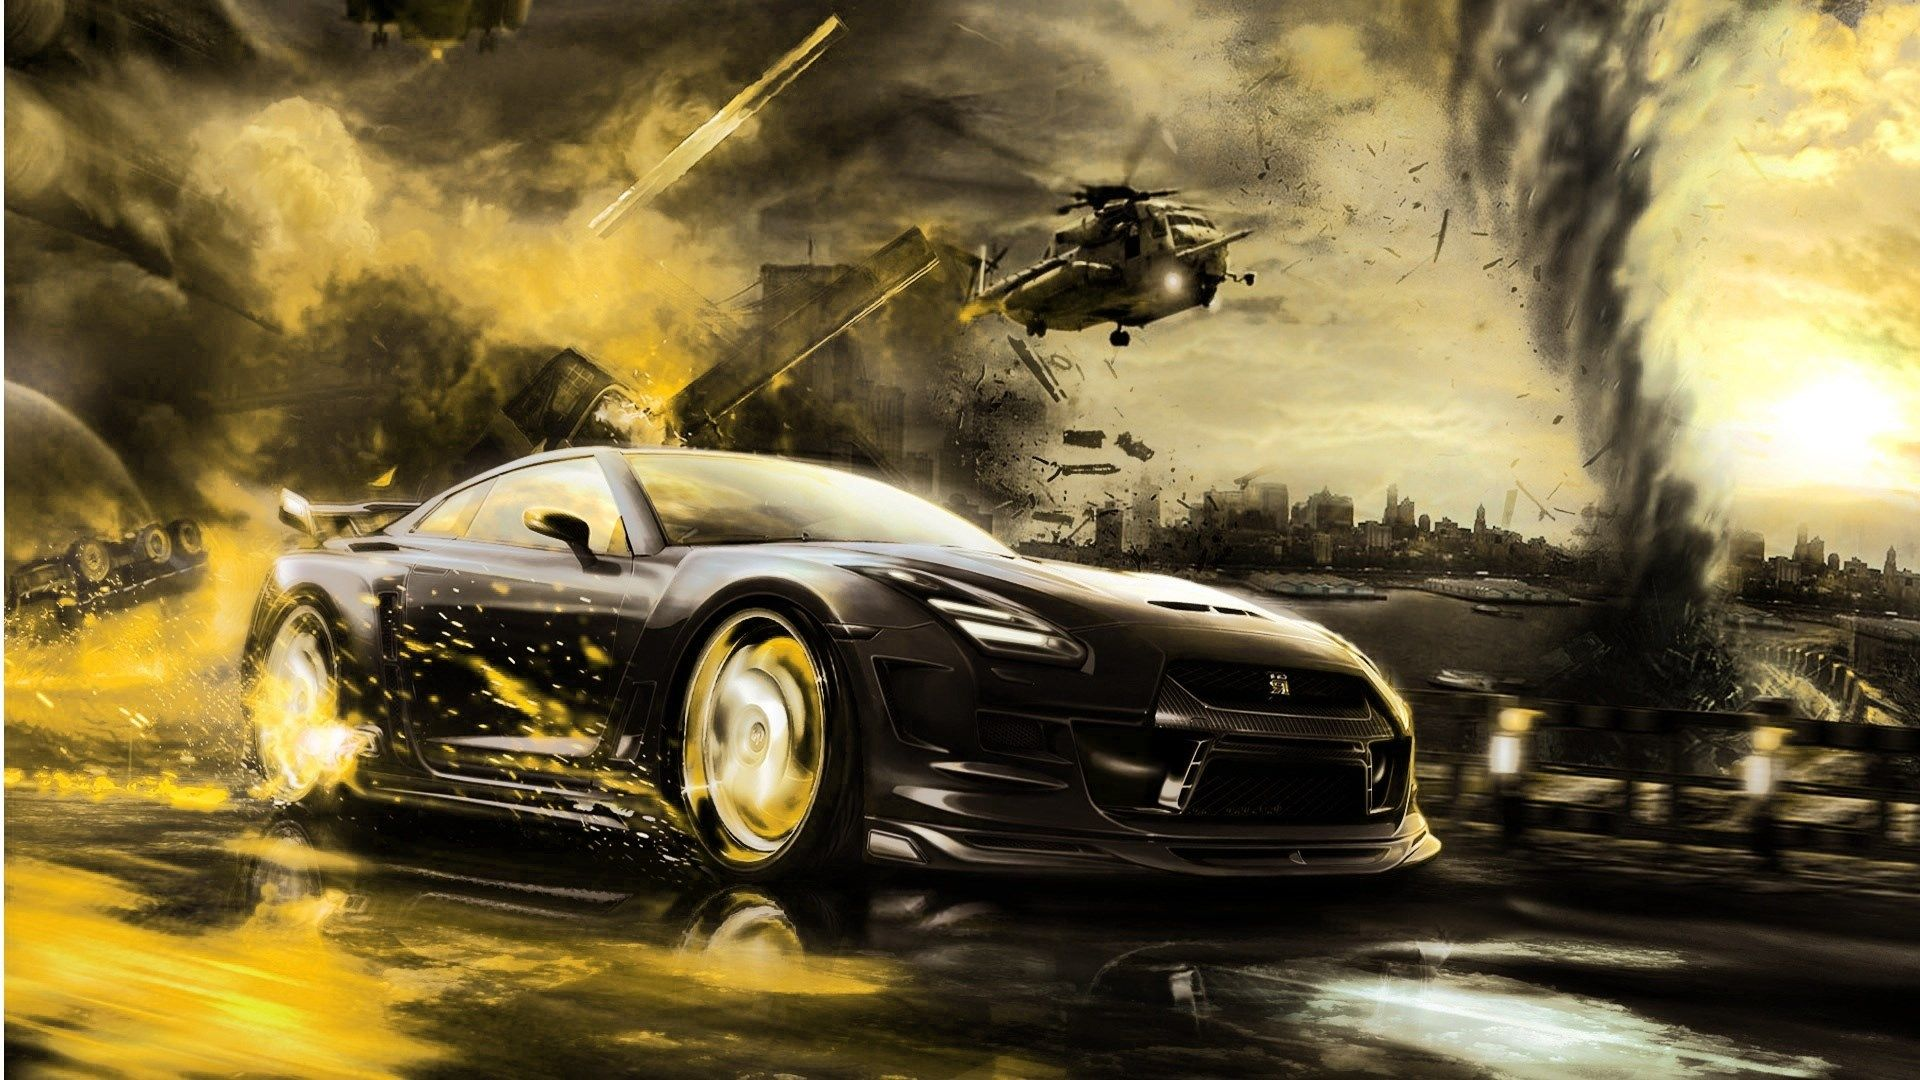 Awesome Halicopter Car Hd Wallpapers 1080p Ololoshenka Pinterest